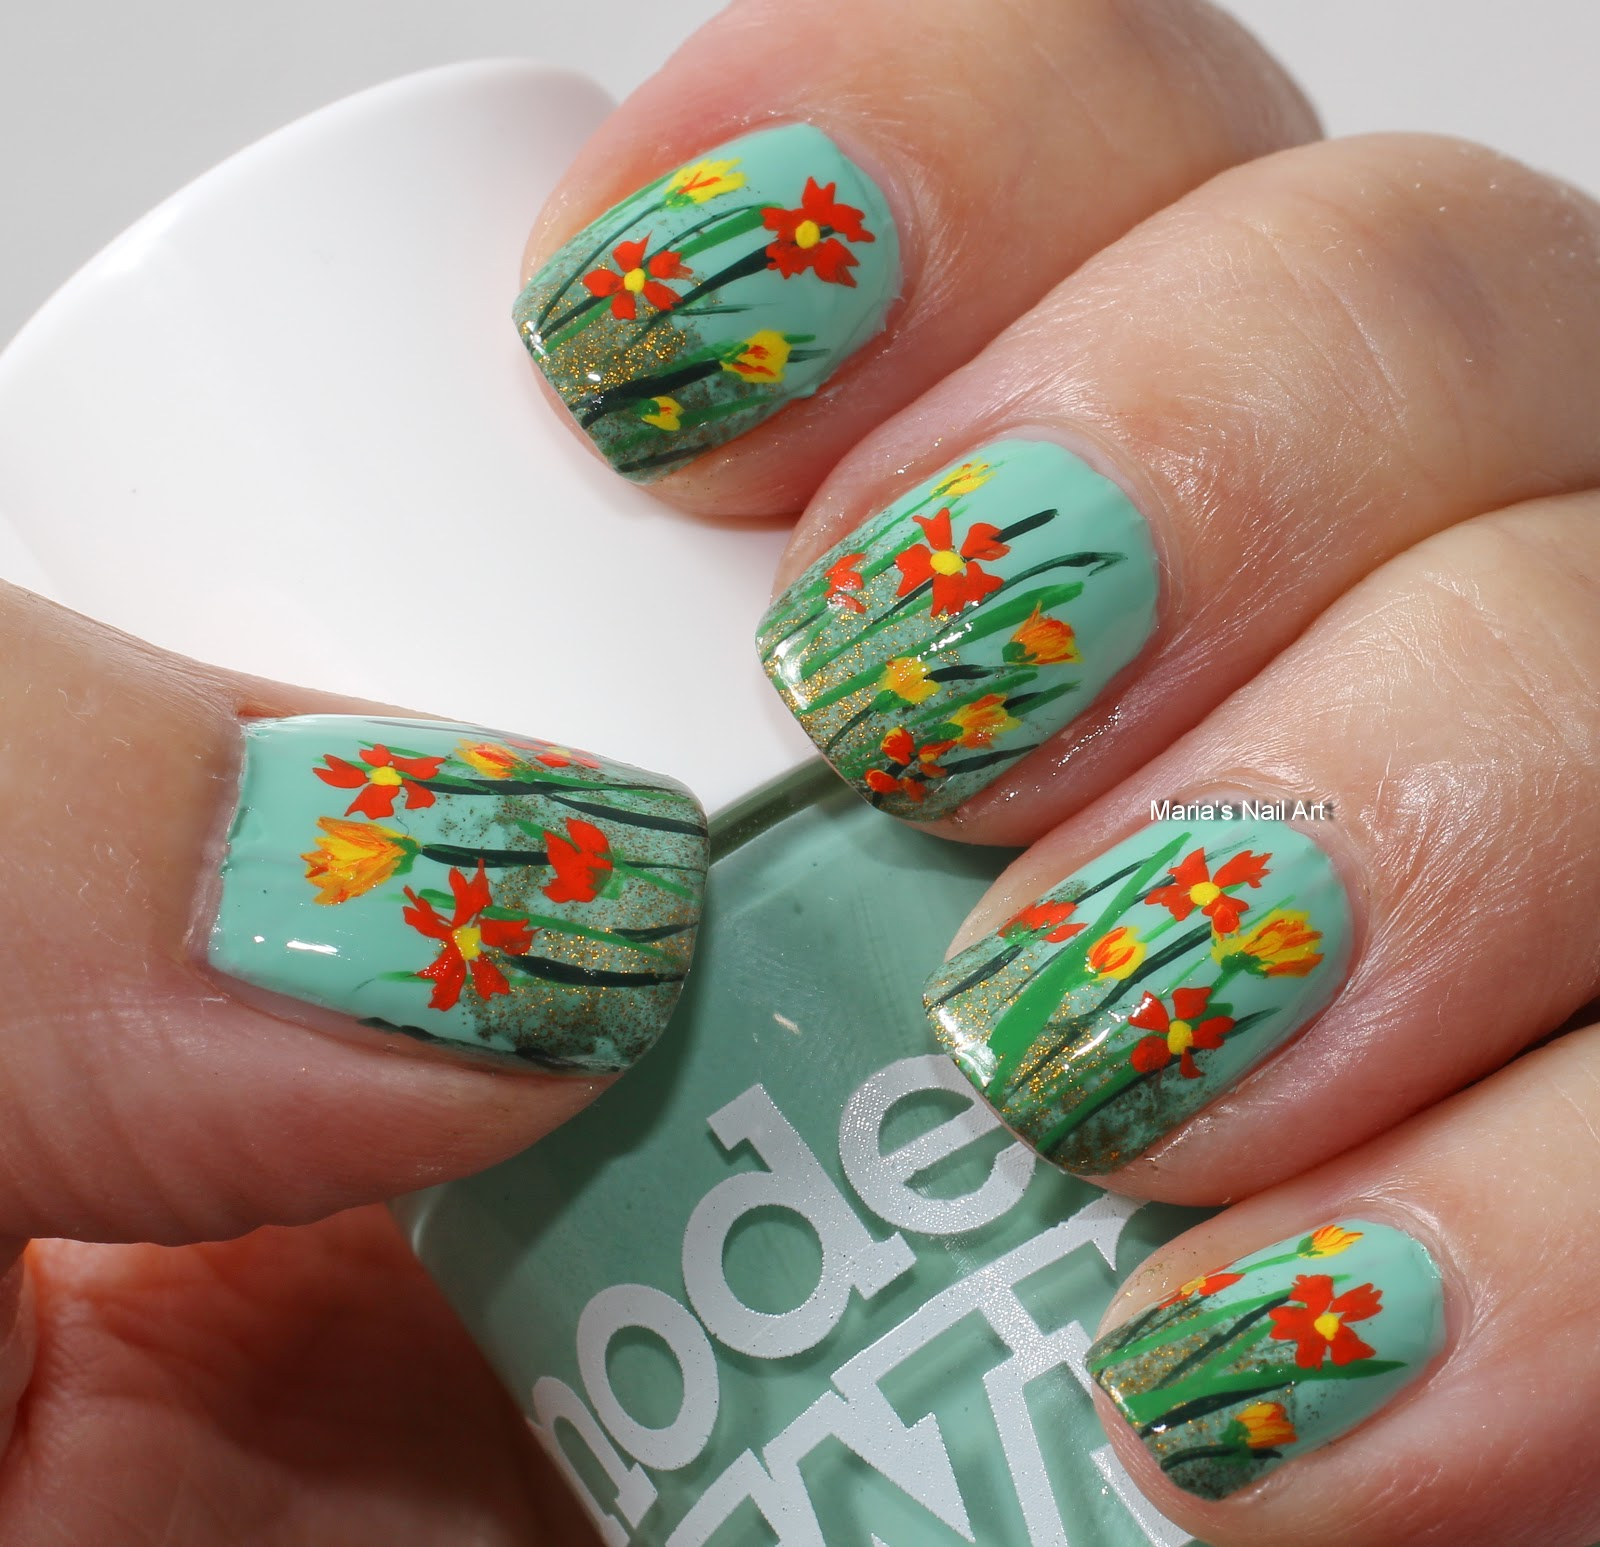 Marias Nail Art And Polish Blog: The Wild Flowers On The